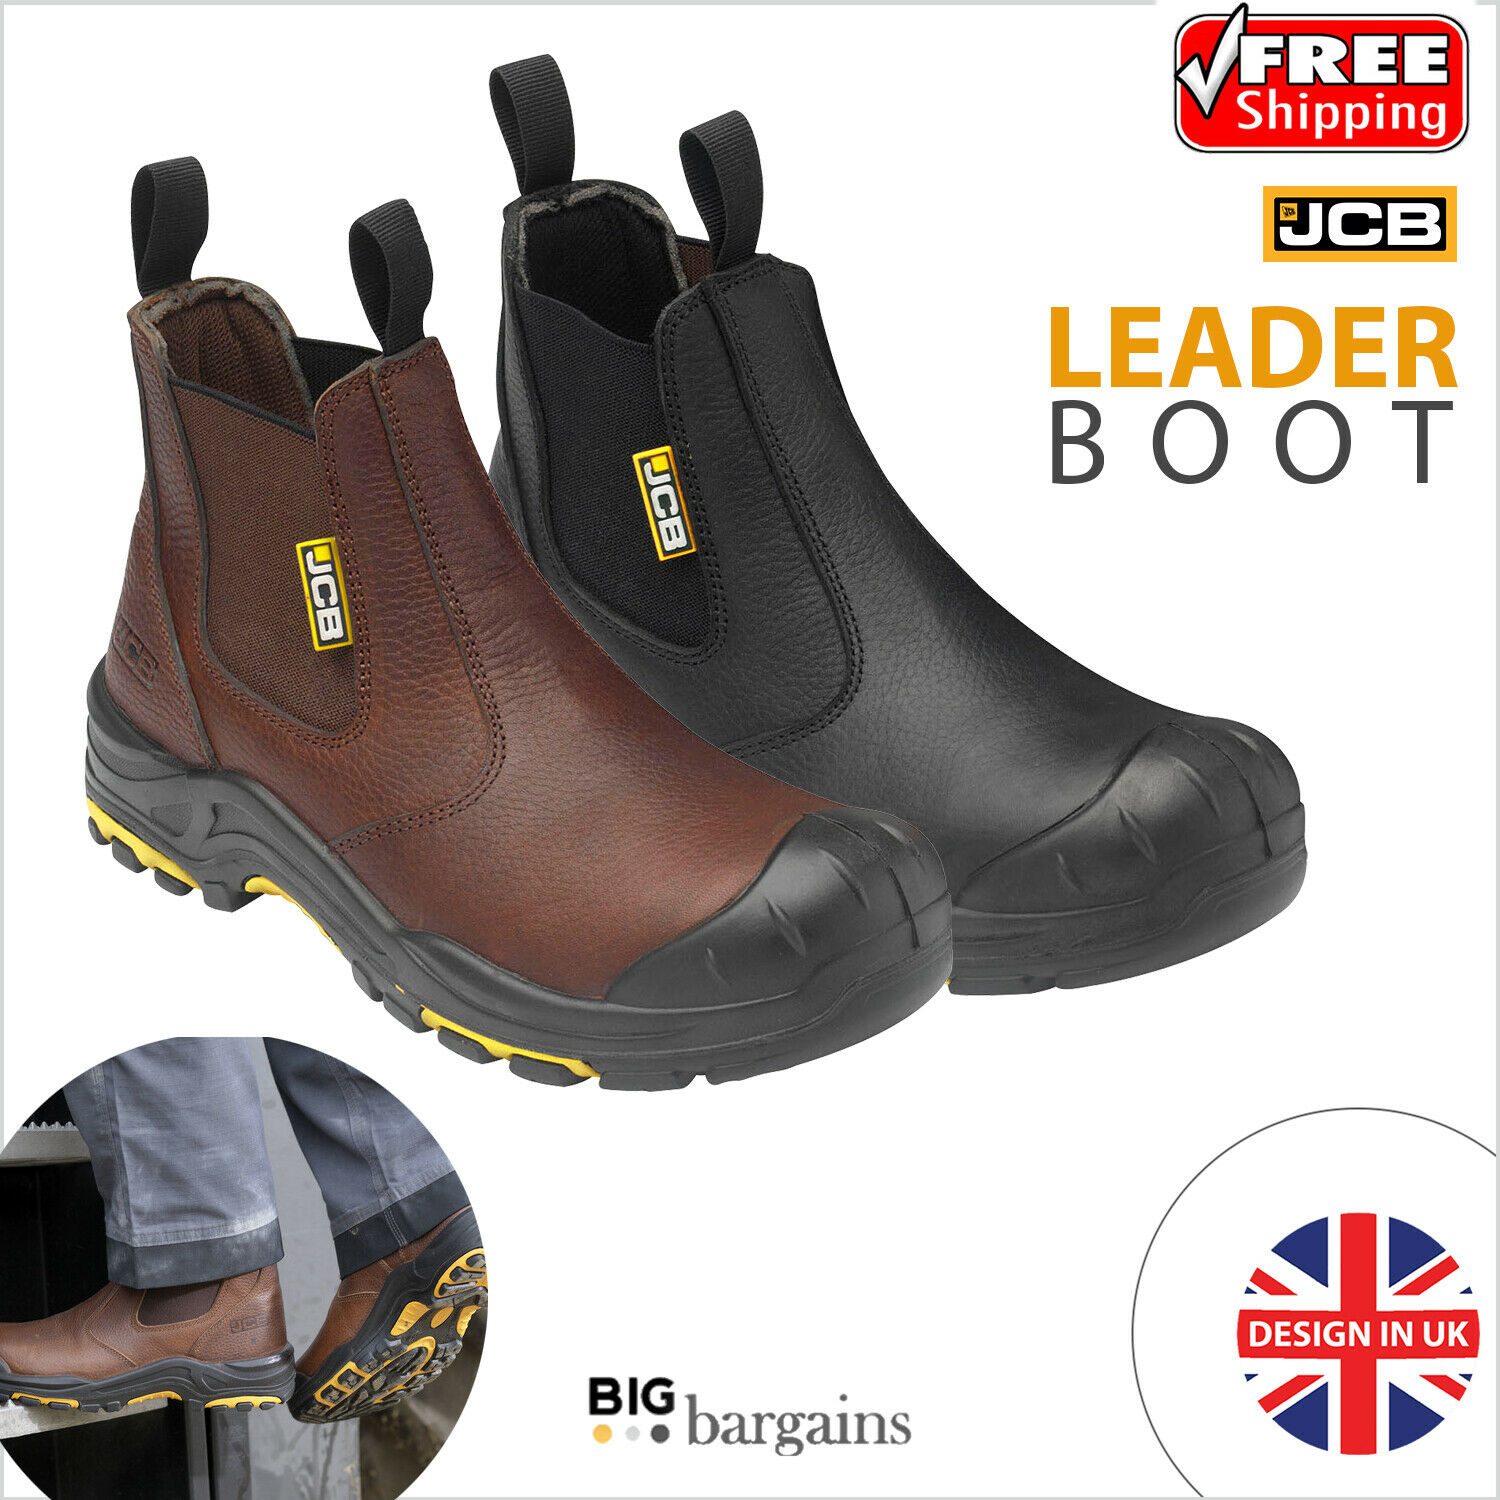 JCB Mens Chelsea Leather Dealer Boot Steel Toecap Composite Mid-sole Safety Boot